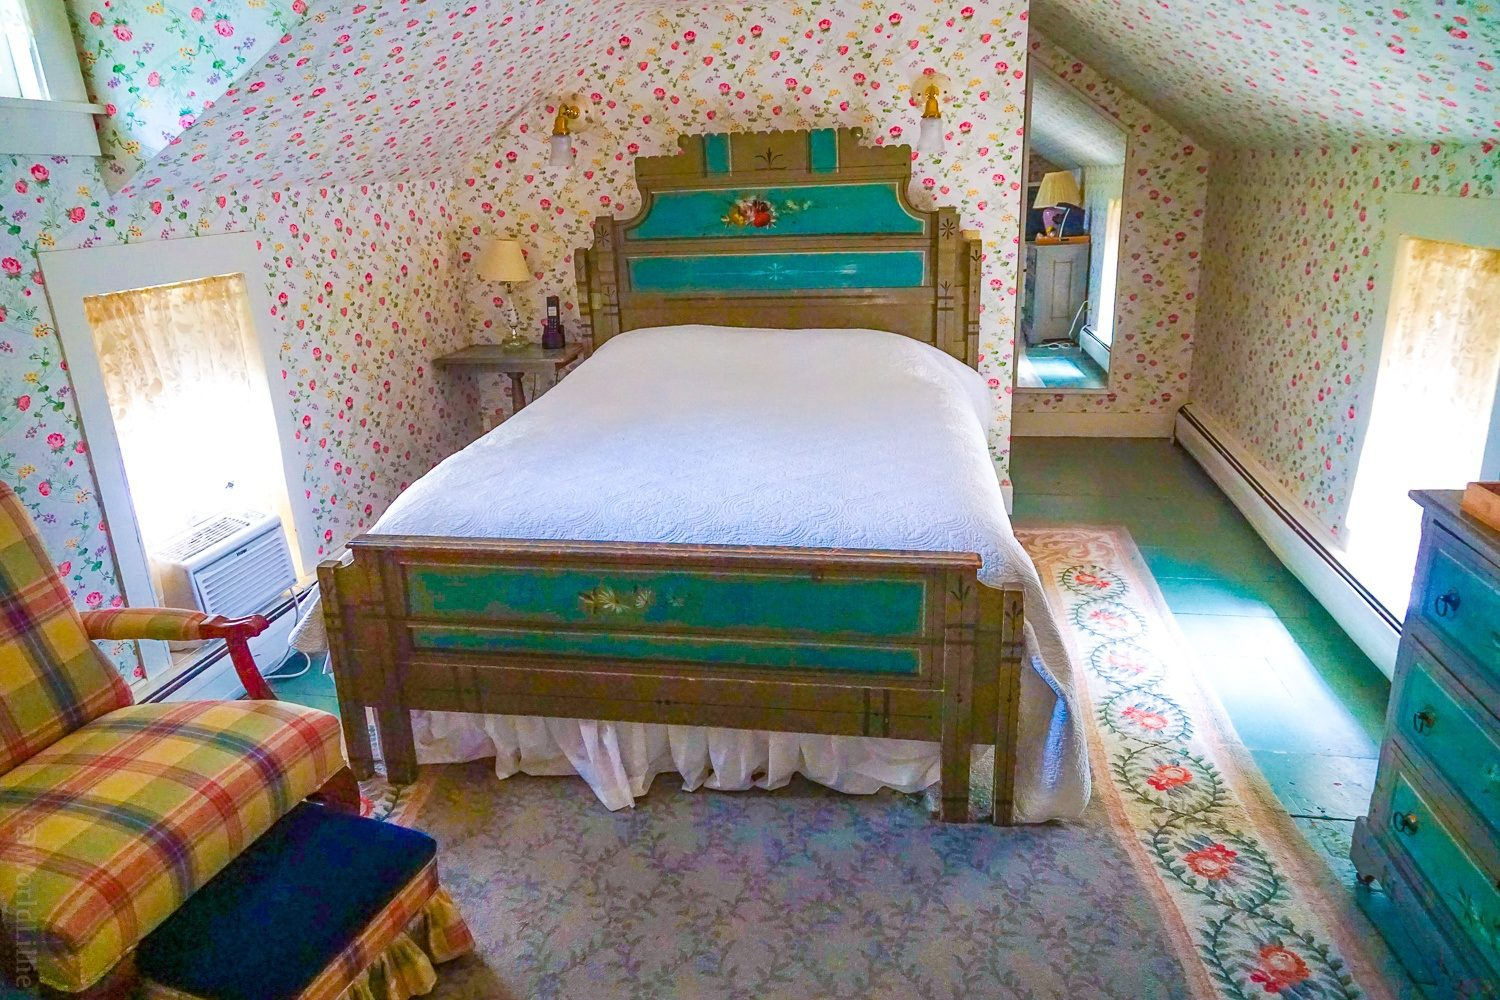 An antique room and historic shabby chic bed at the Red Lion Inn, Stockbridge.